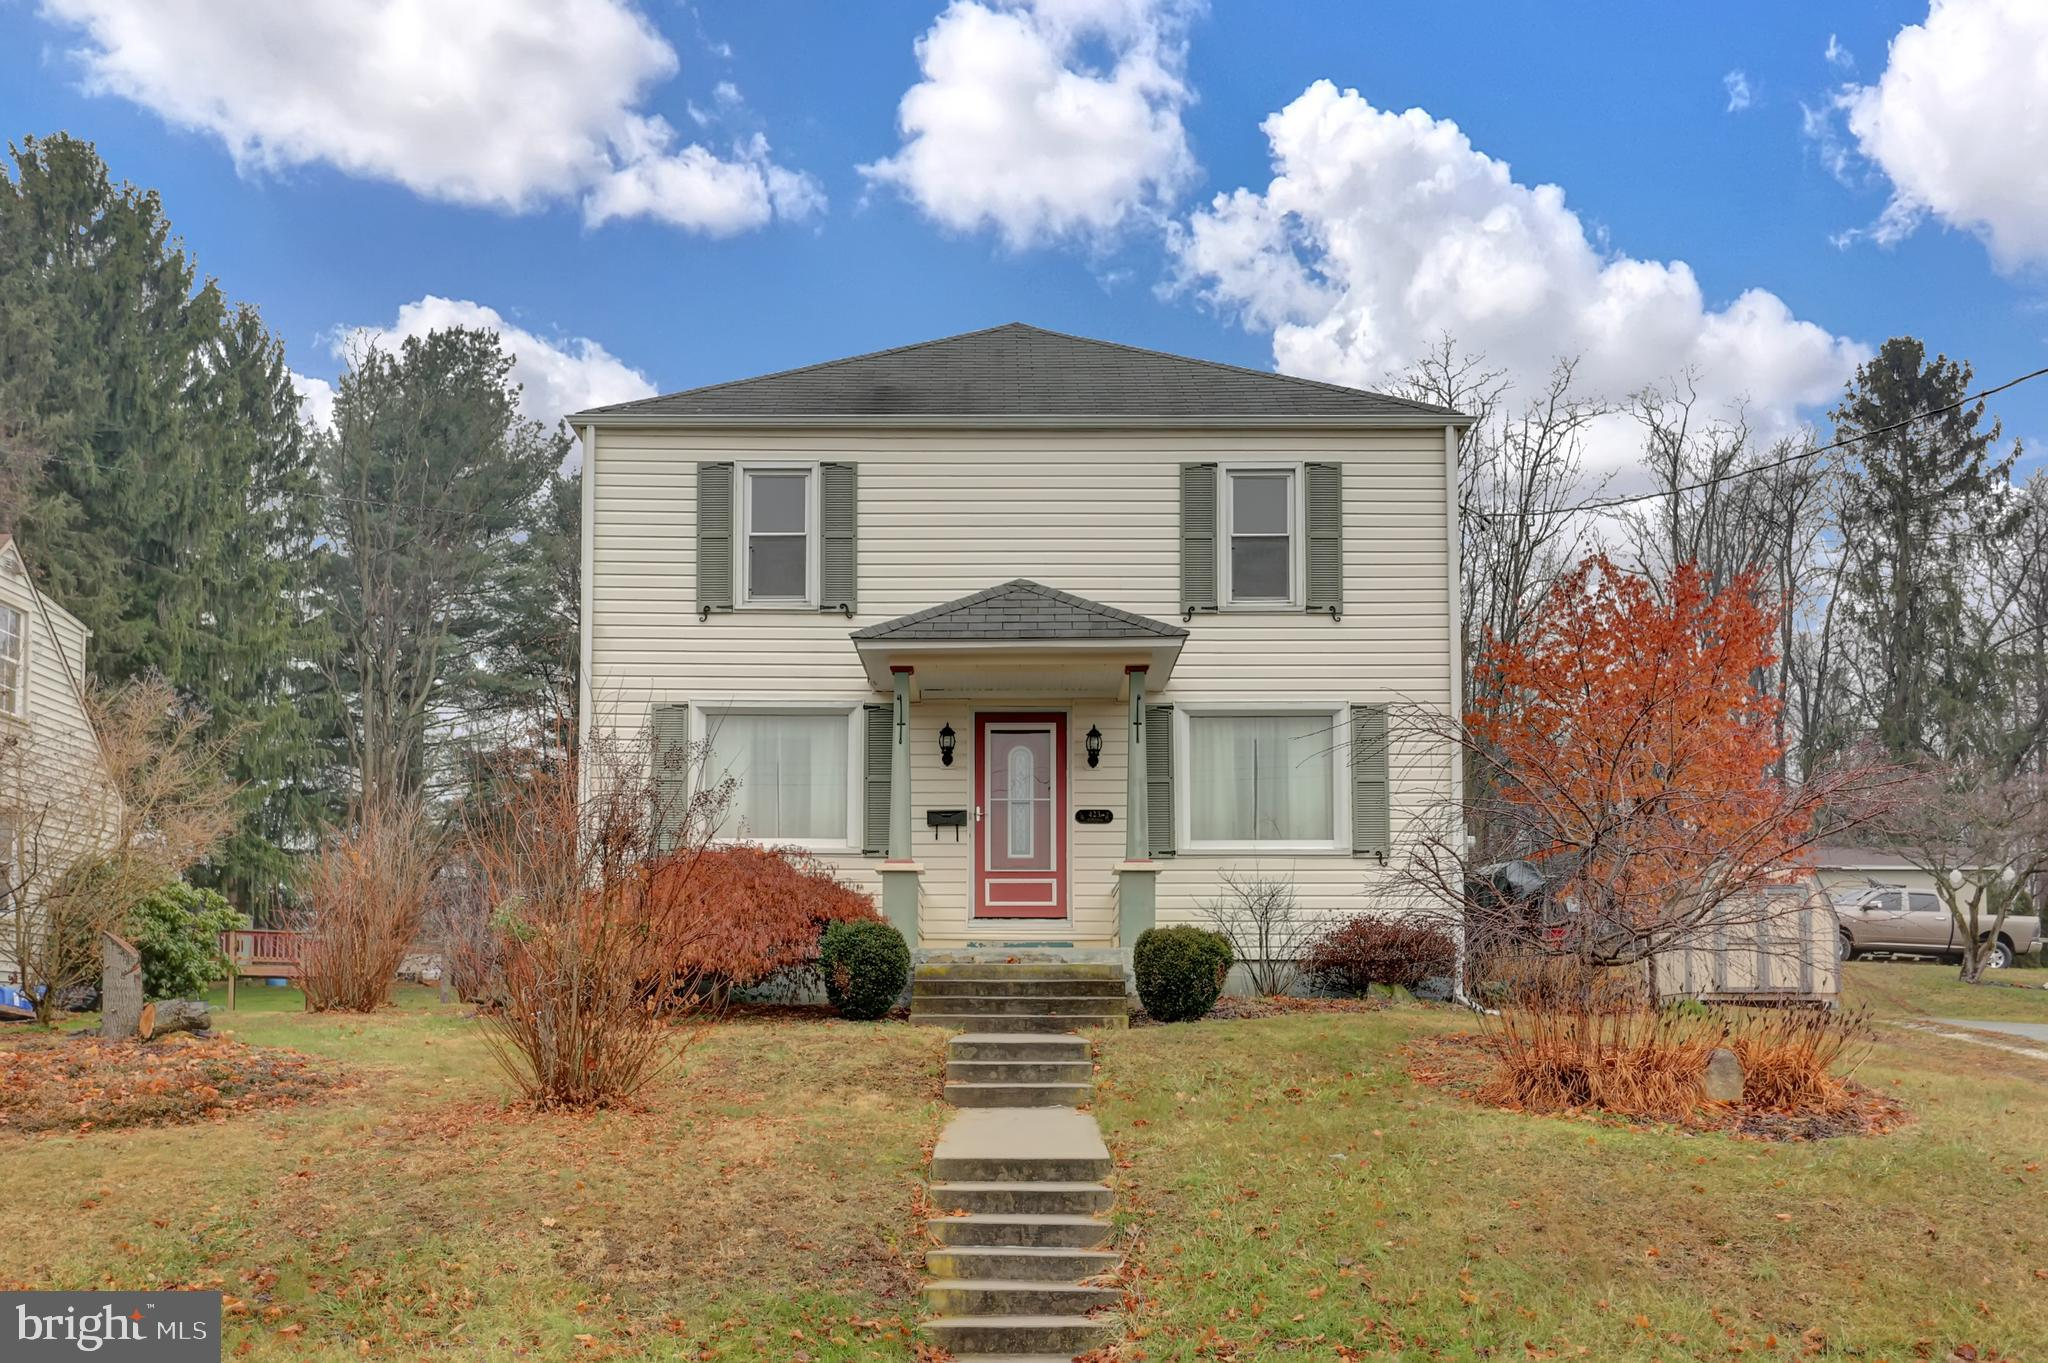 423 N WALNUT STREET, MOUNT HOLLY SPRINGS, PA 17065